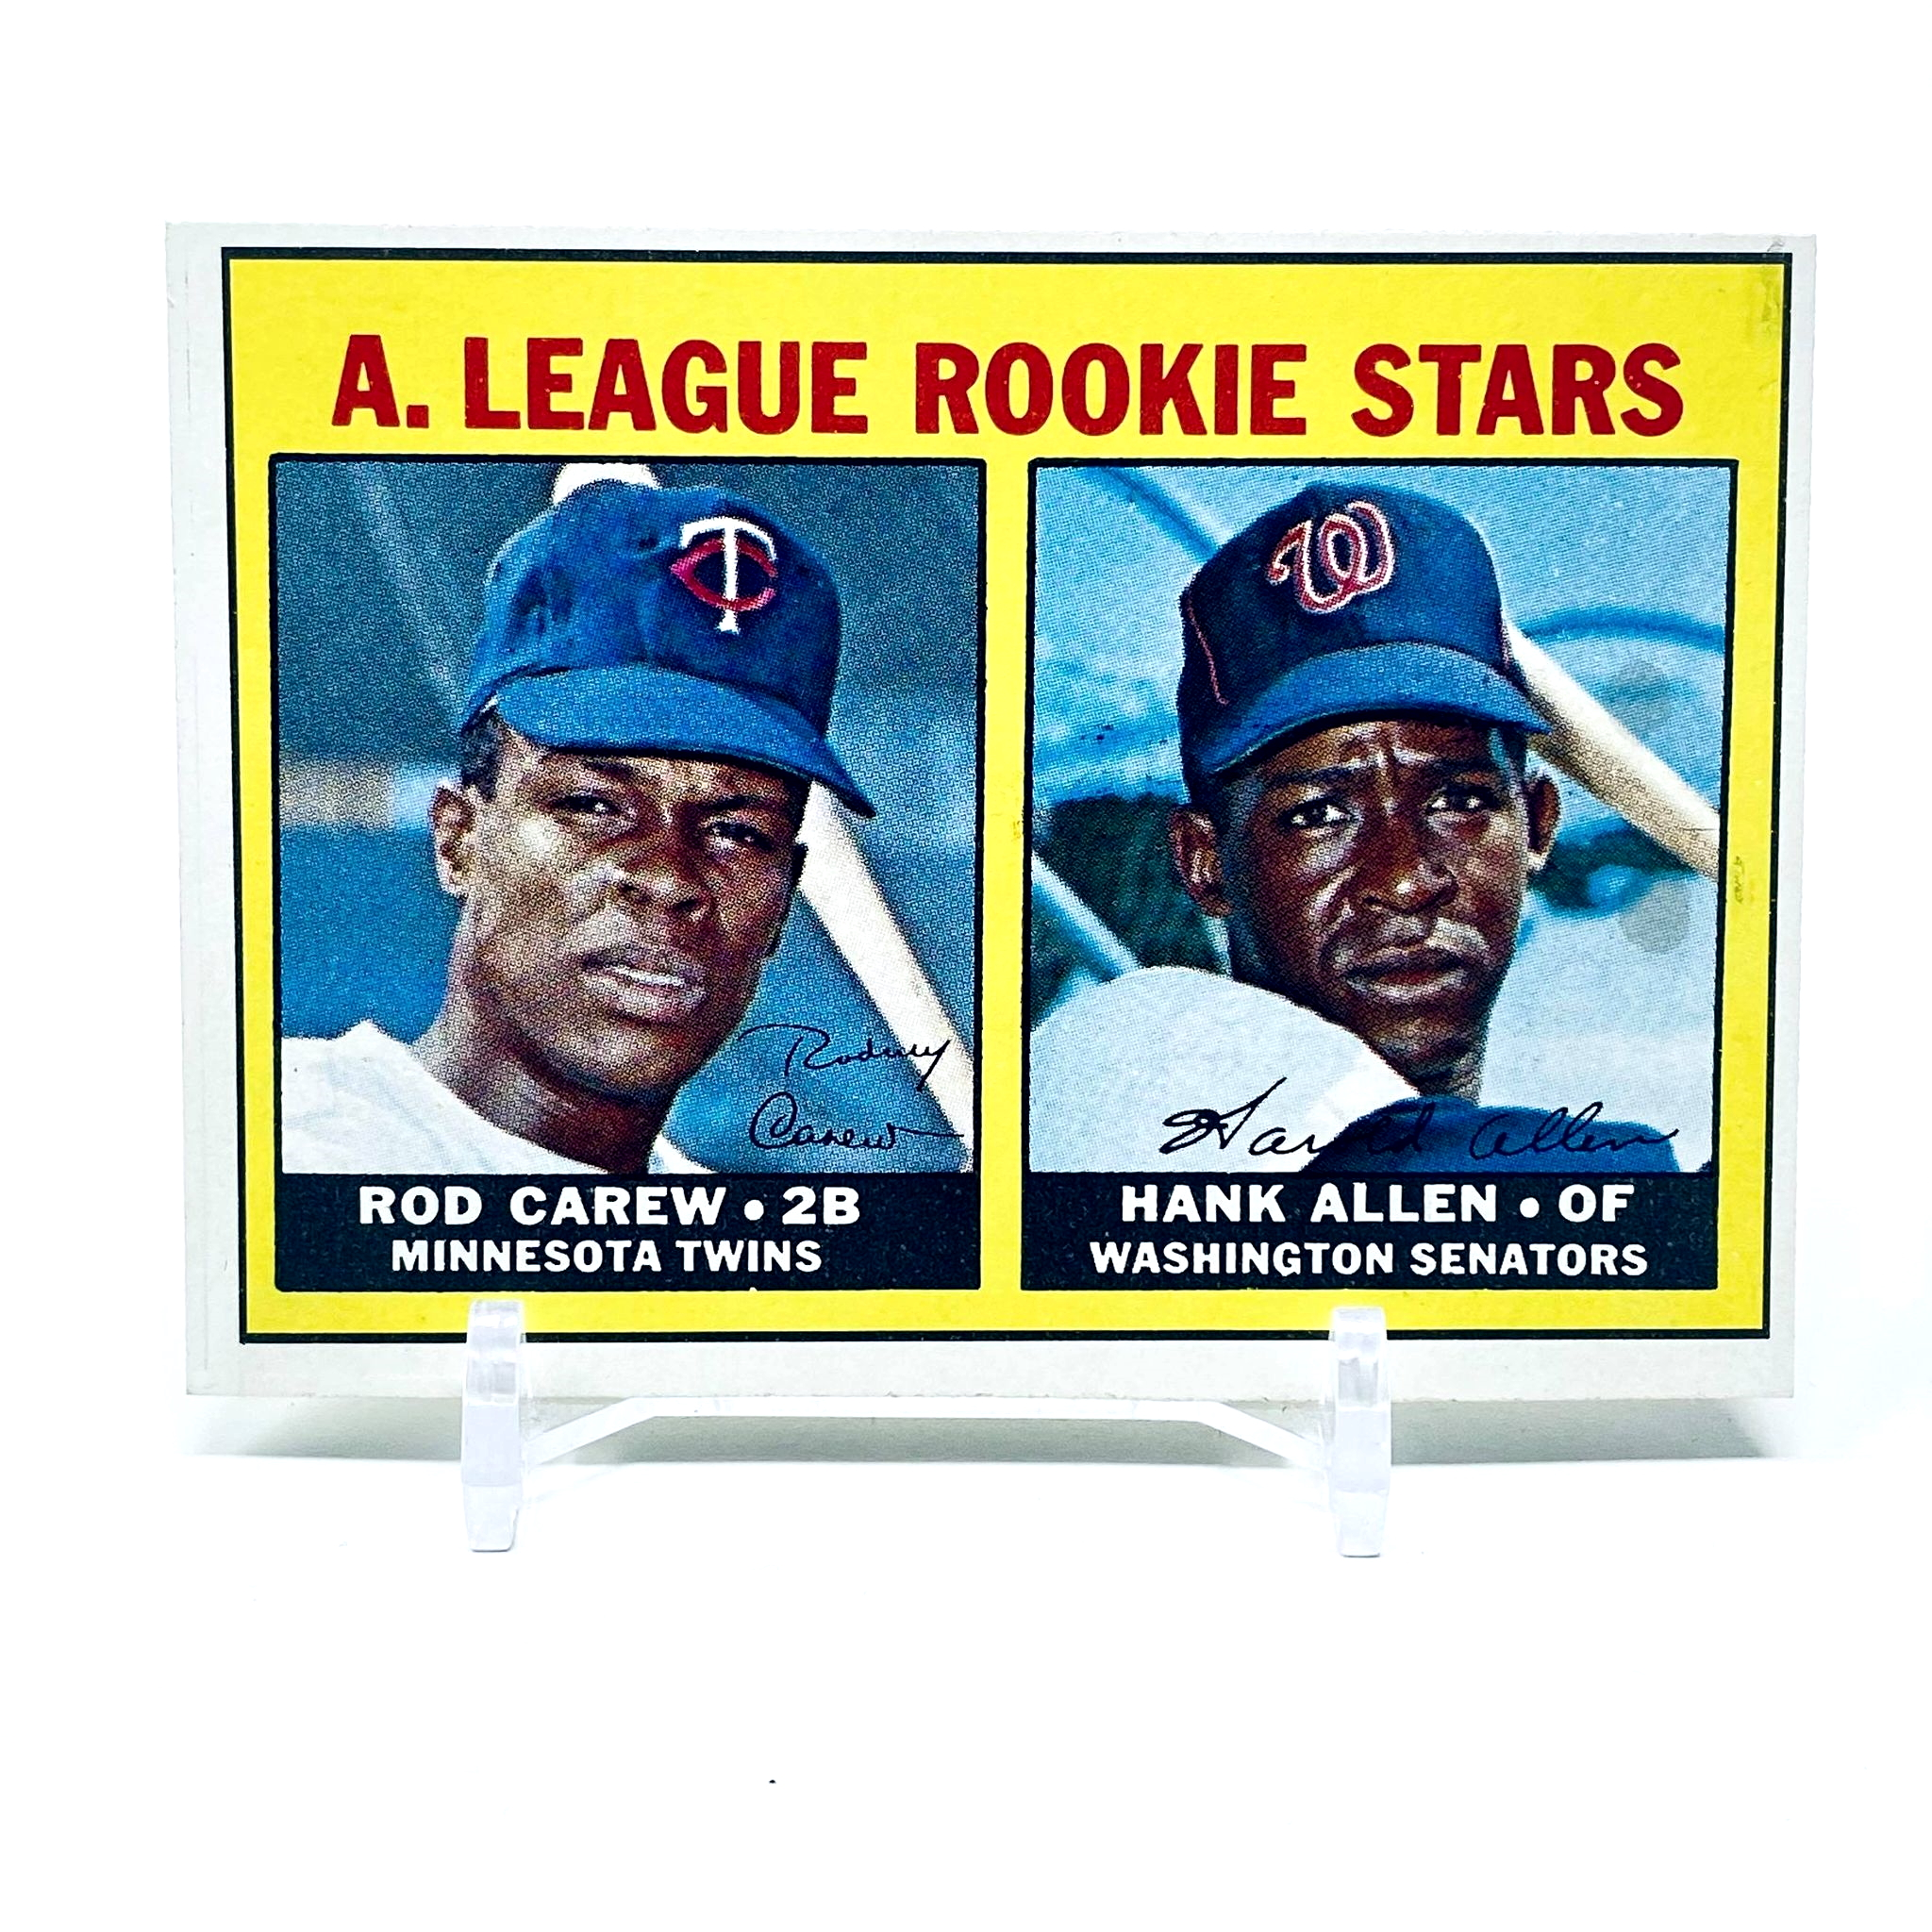 1967 Topps A.L. Rookies Rod Carew & Hank Allen